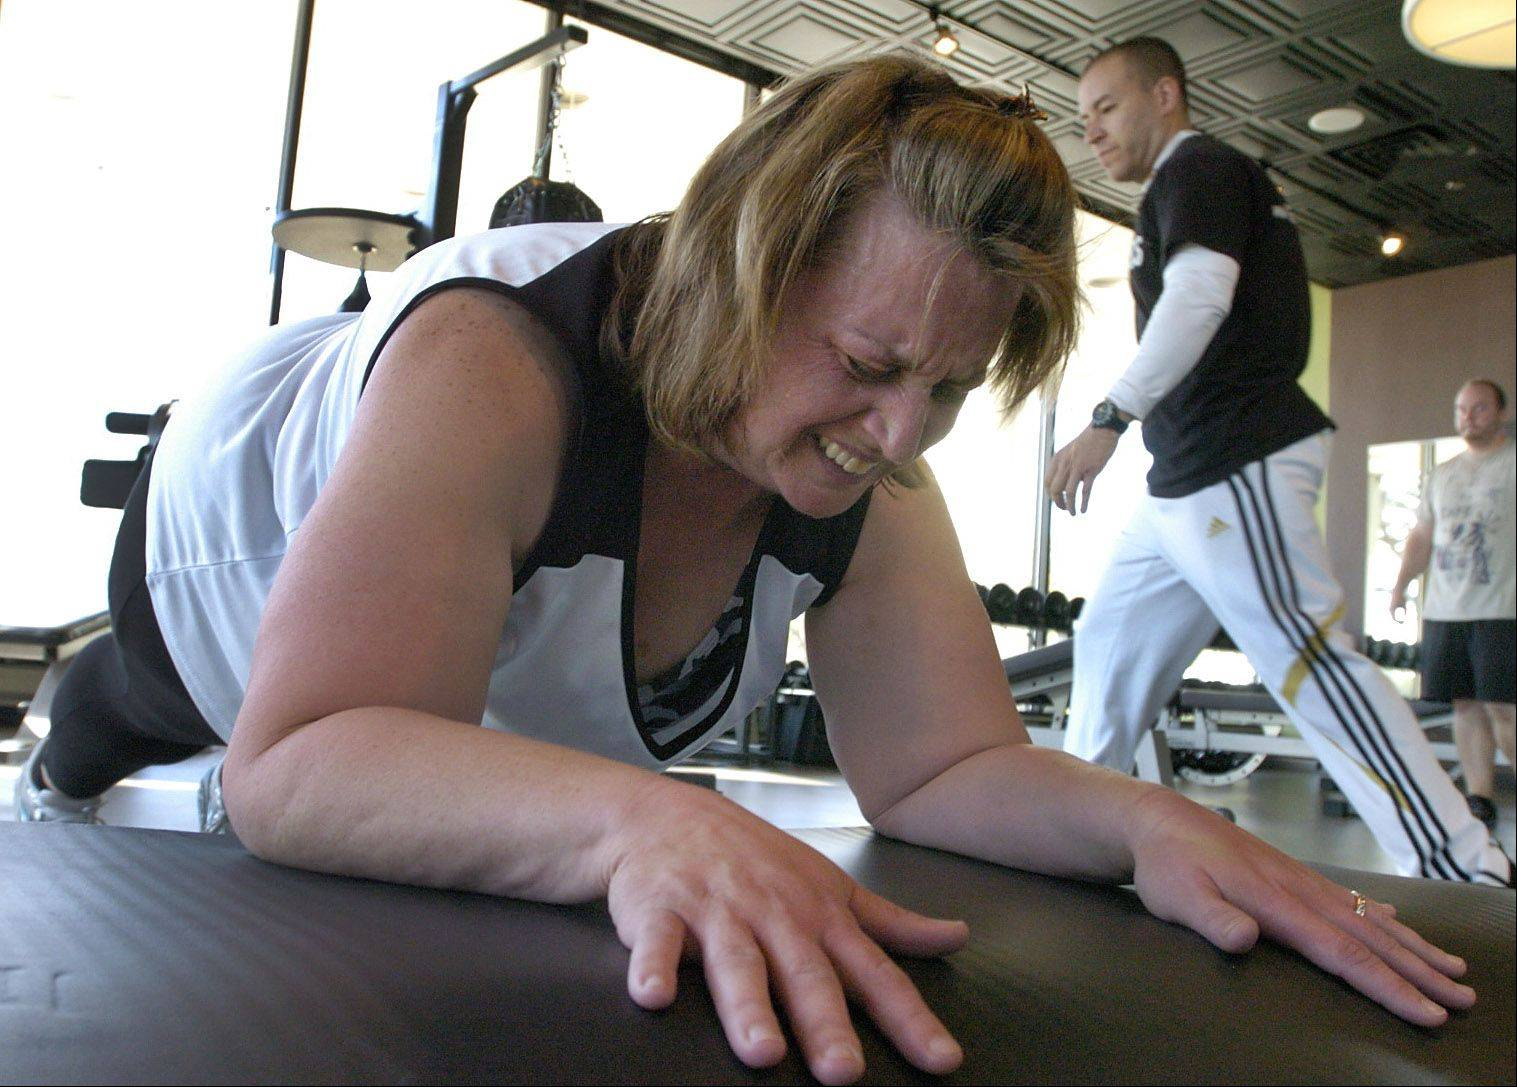 Fittest Loser Karen Maranto works out under the guidance of Push Fitness trainer Tony Figueroa.